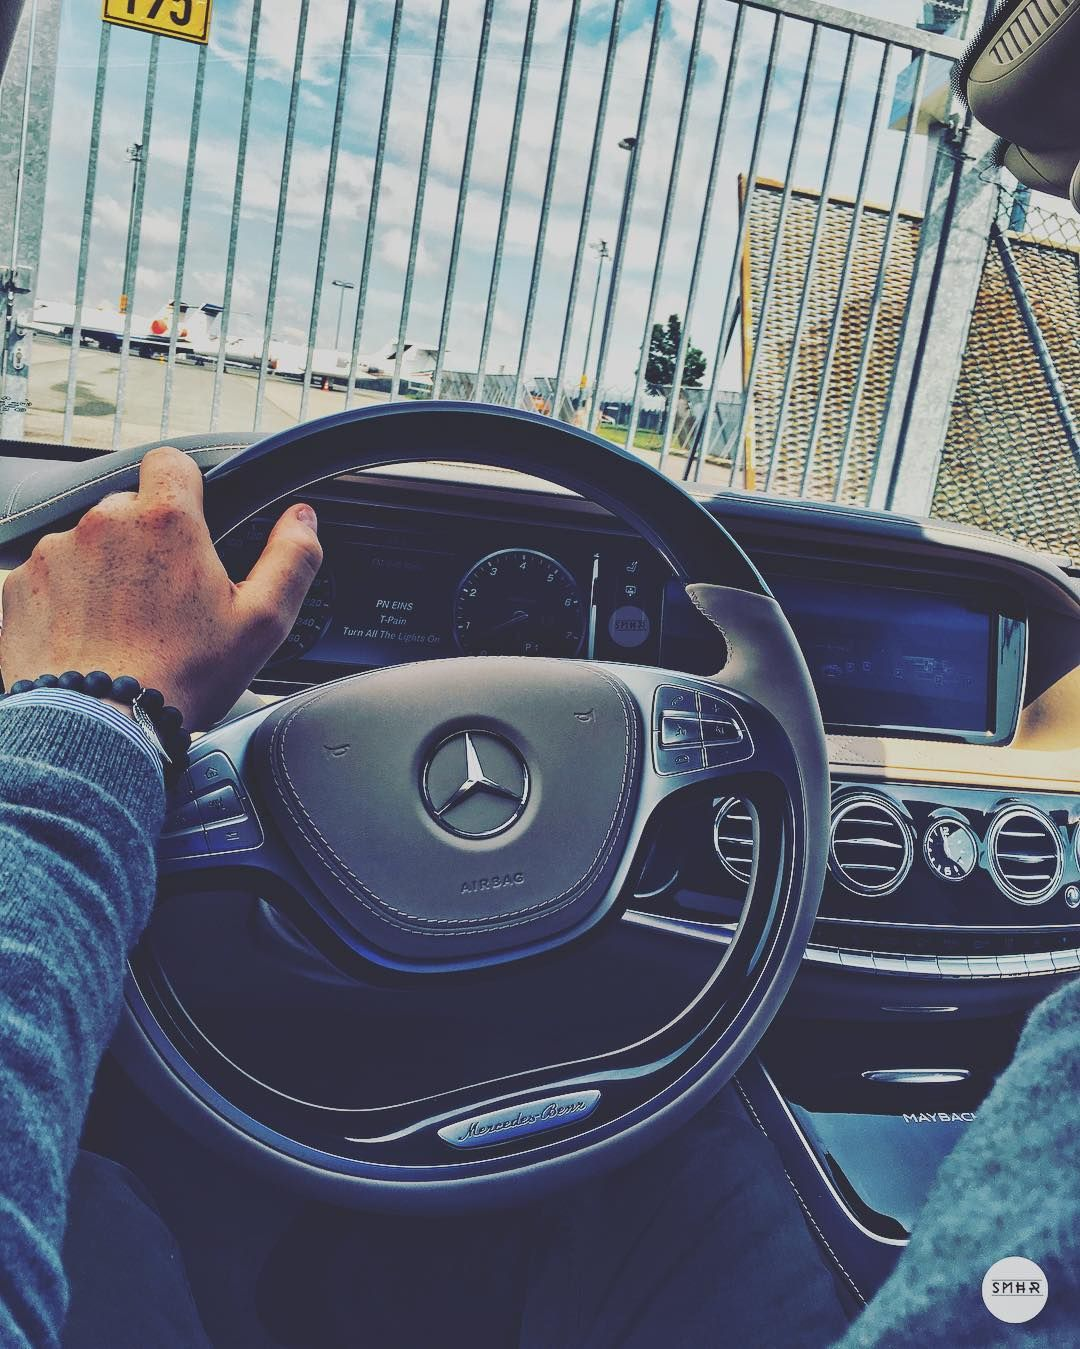 Pin By South Bay Autohaus On Mercedes-Benz Interiors